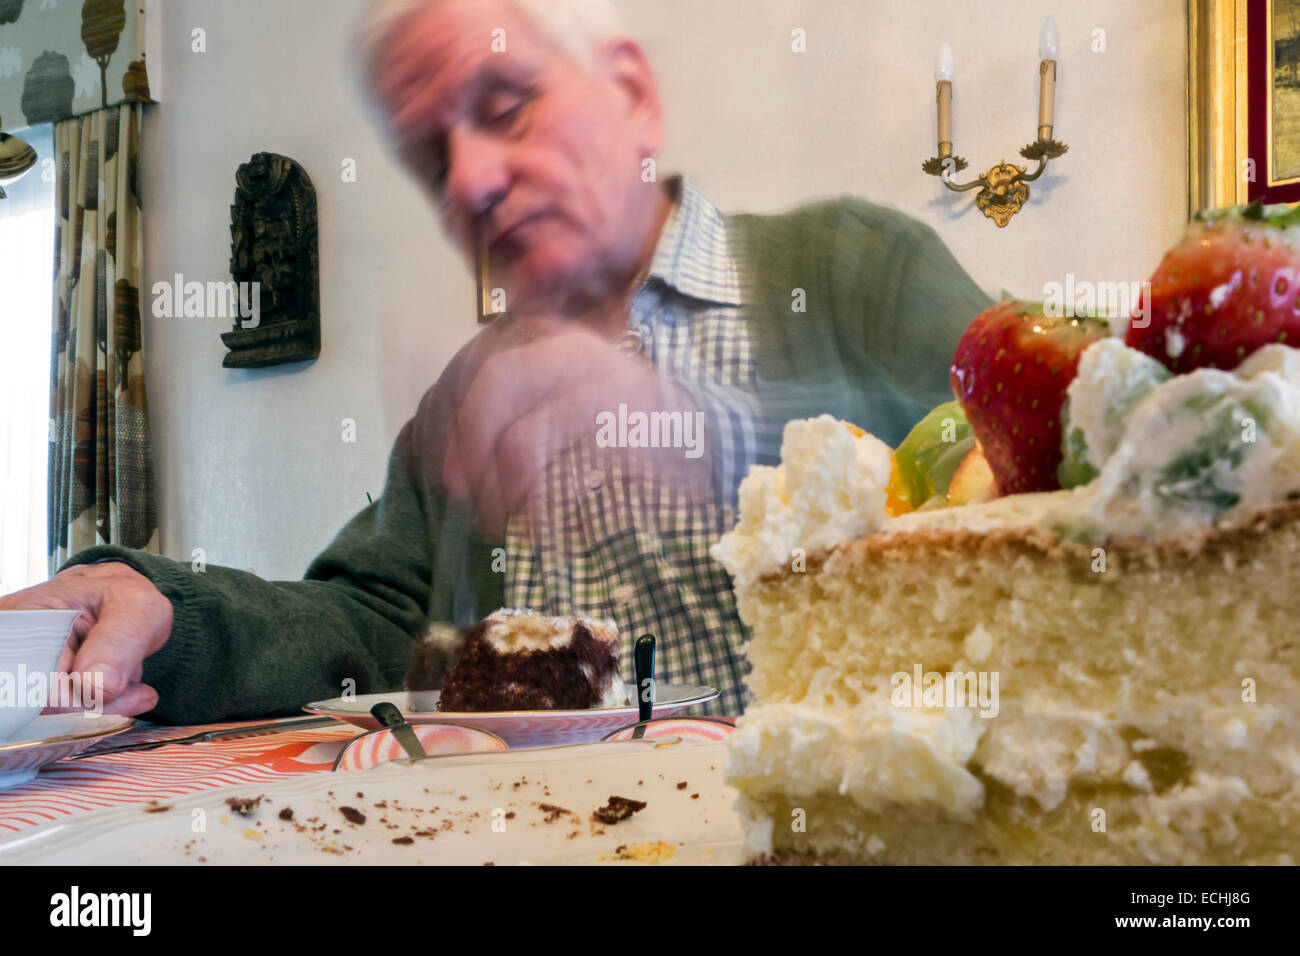 Sad looking lonesome elderly man eating birthday cake alone at home in his house - Stock Image